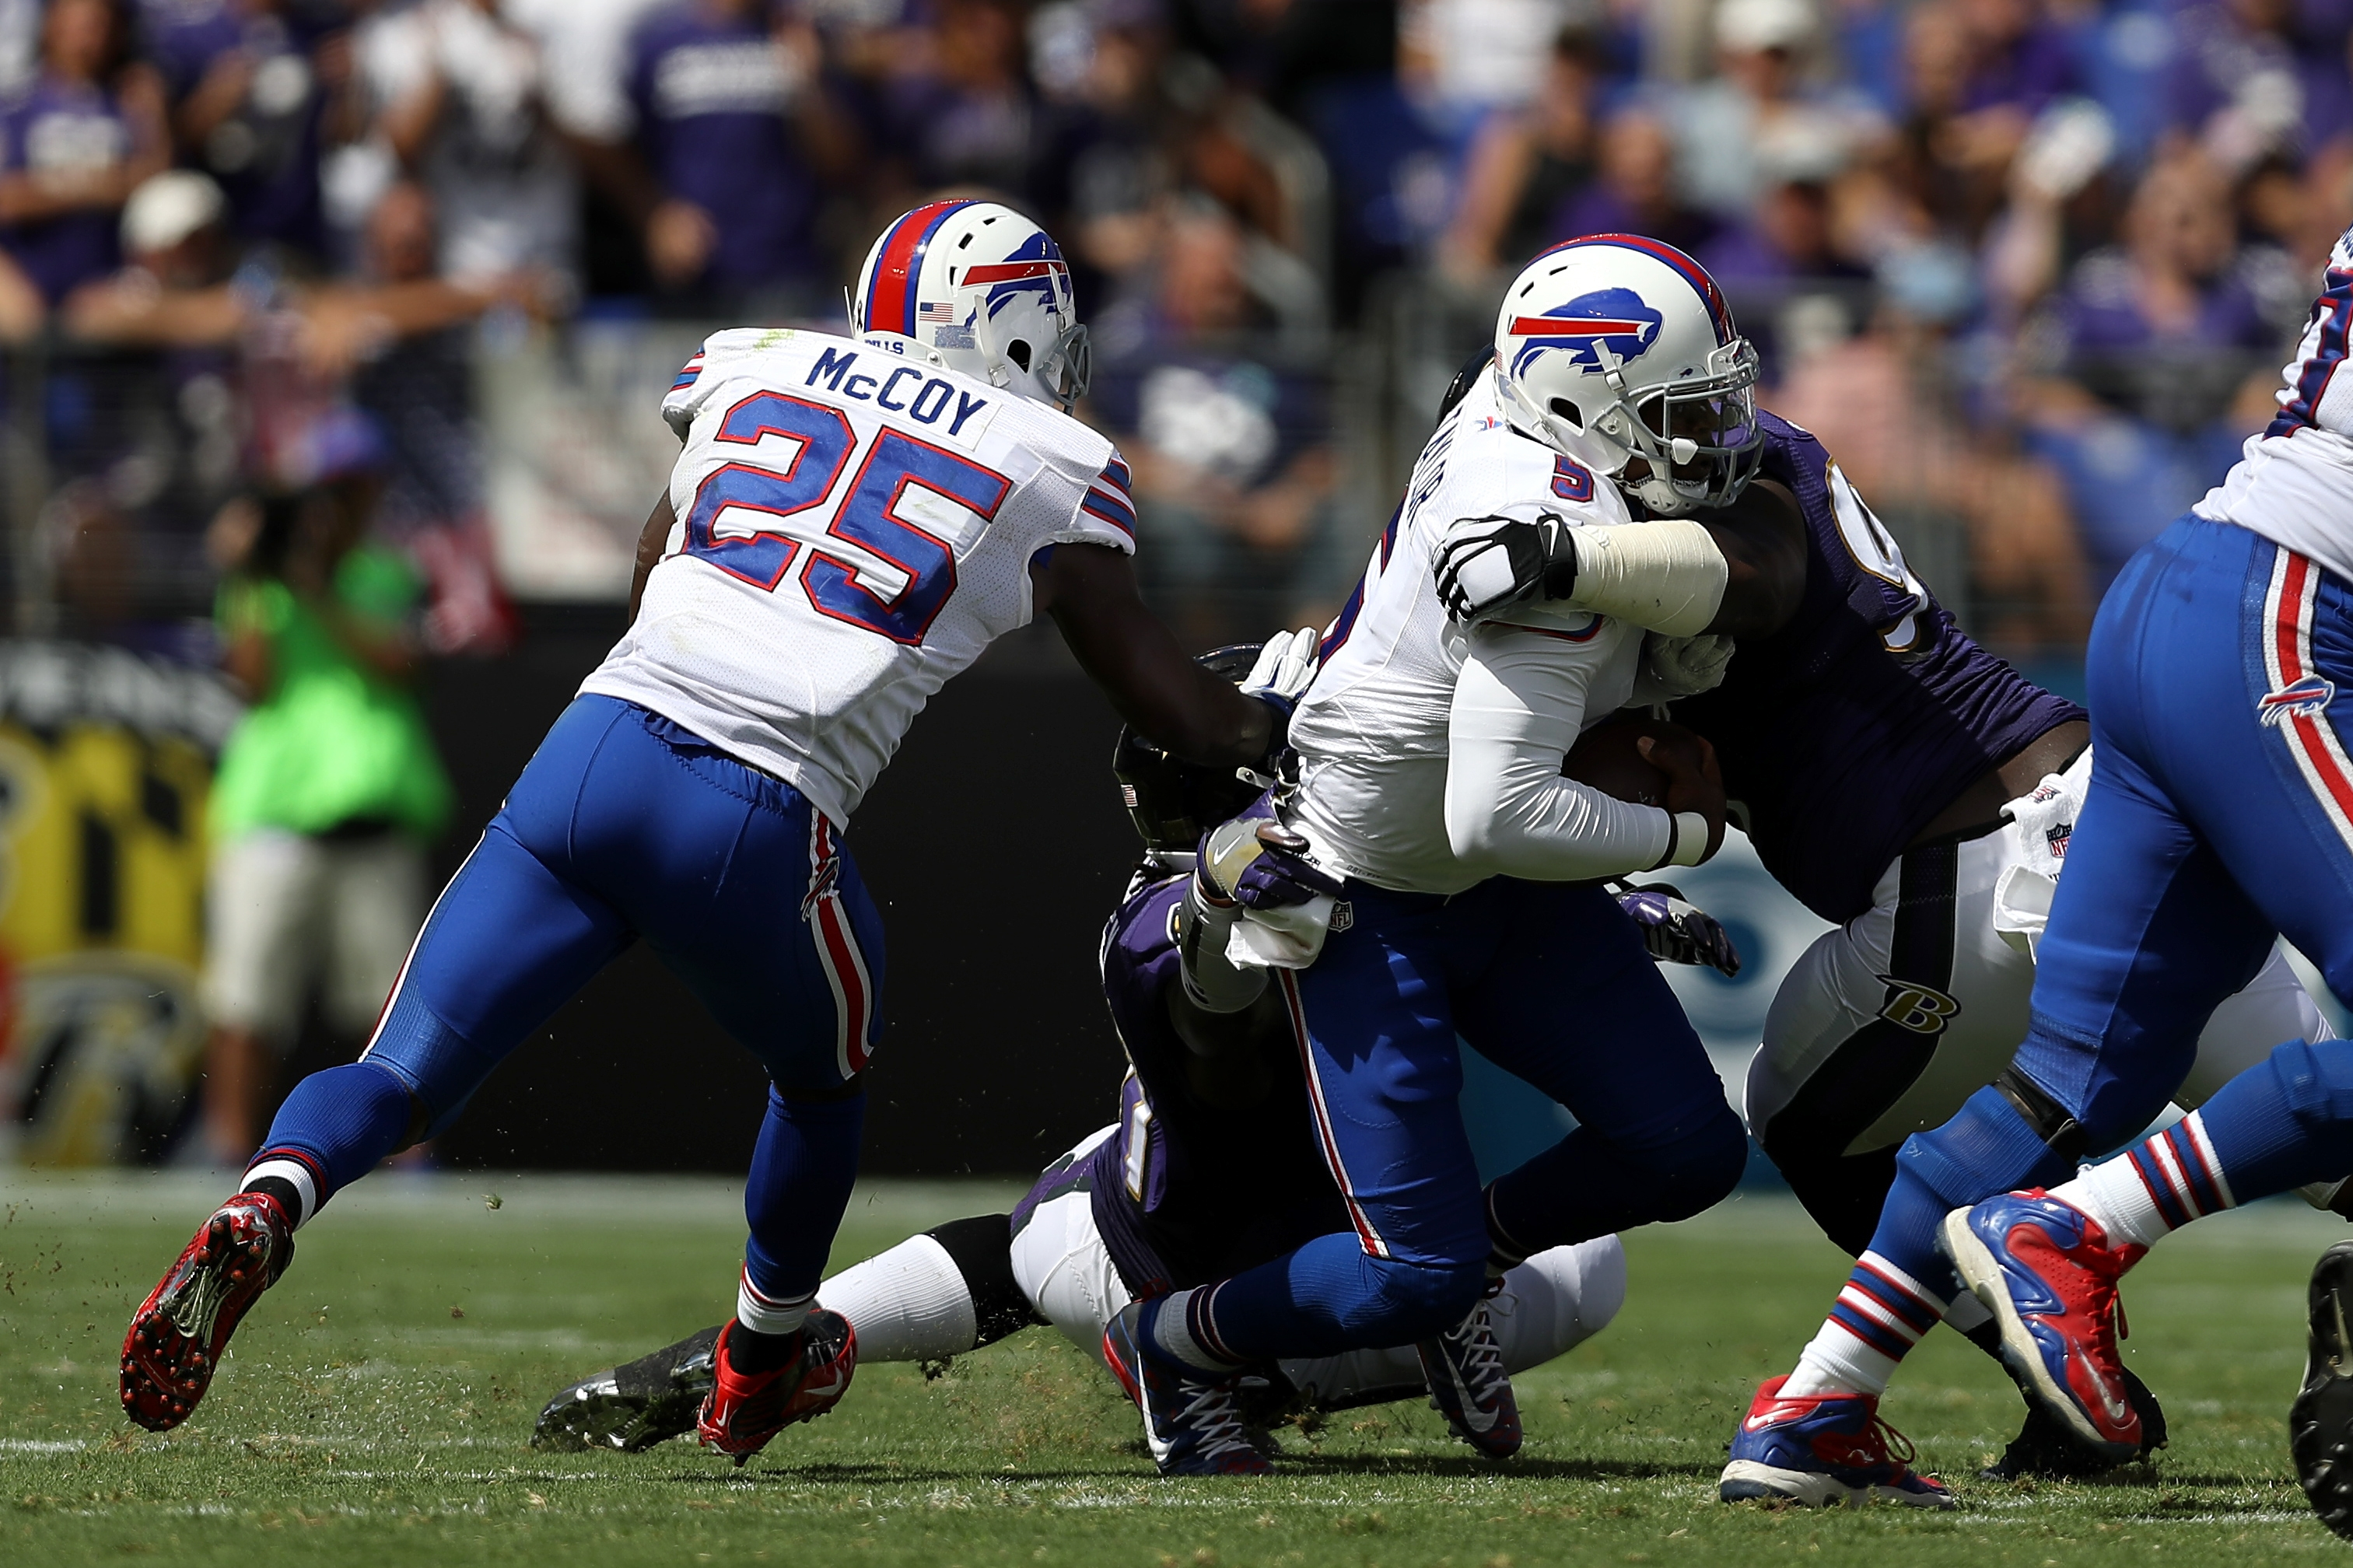 Tyrod Taylor is sacked in the first half.